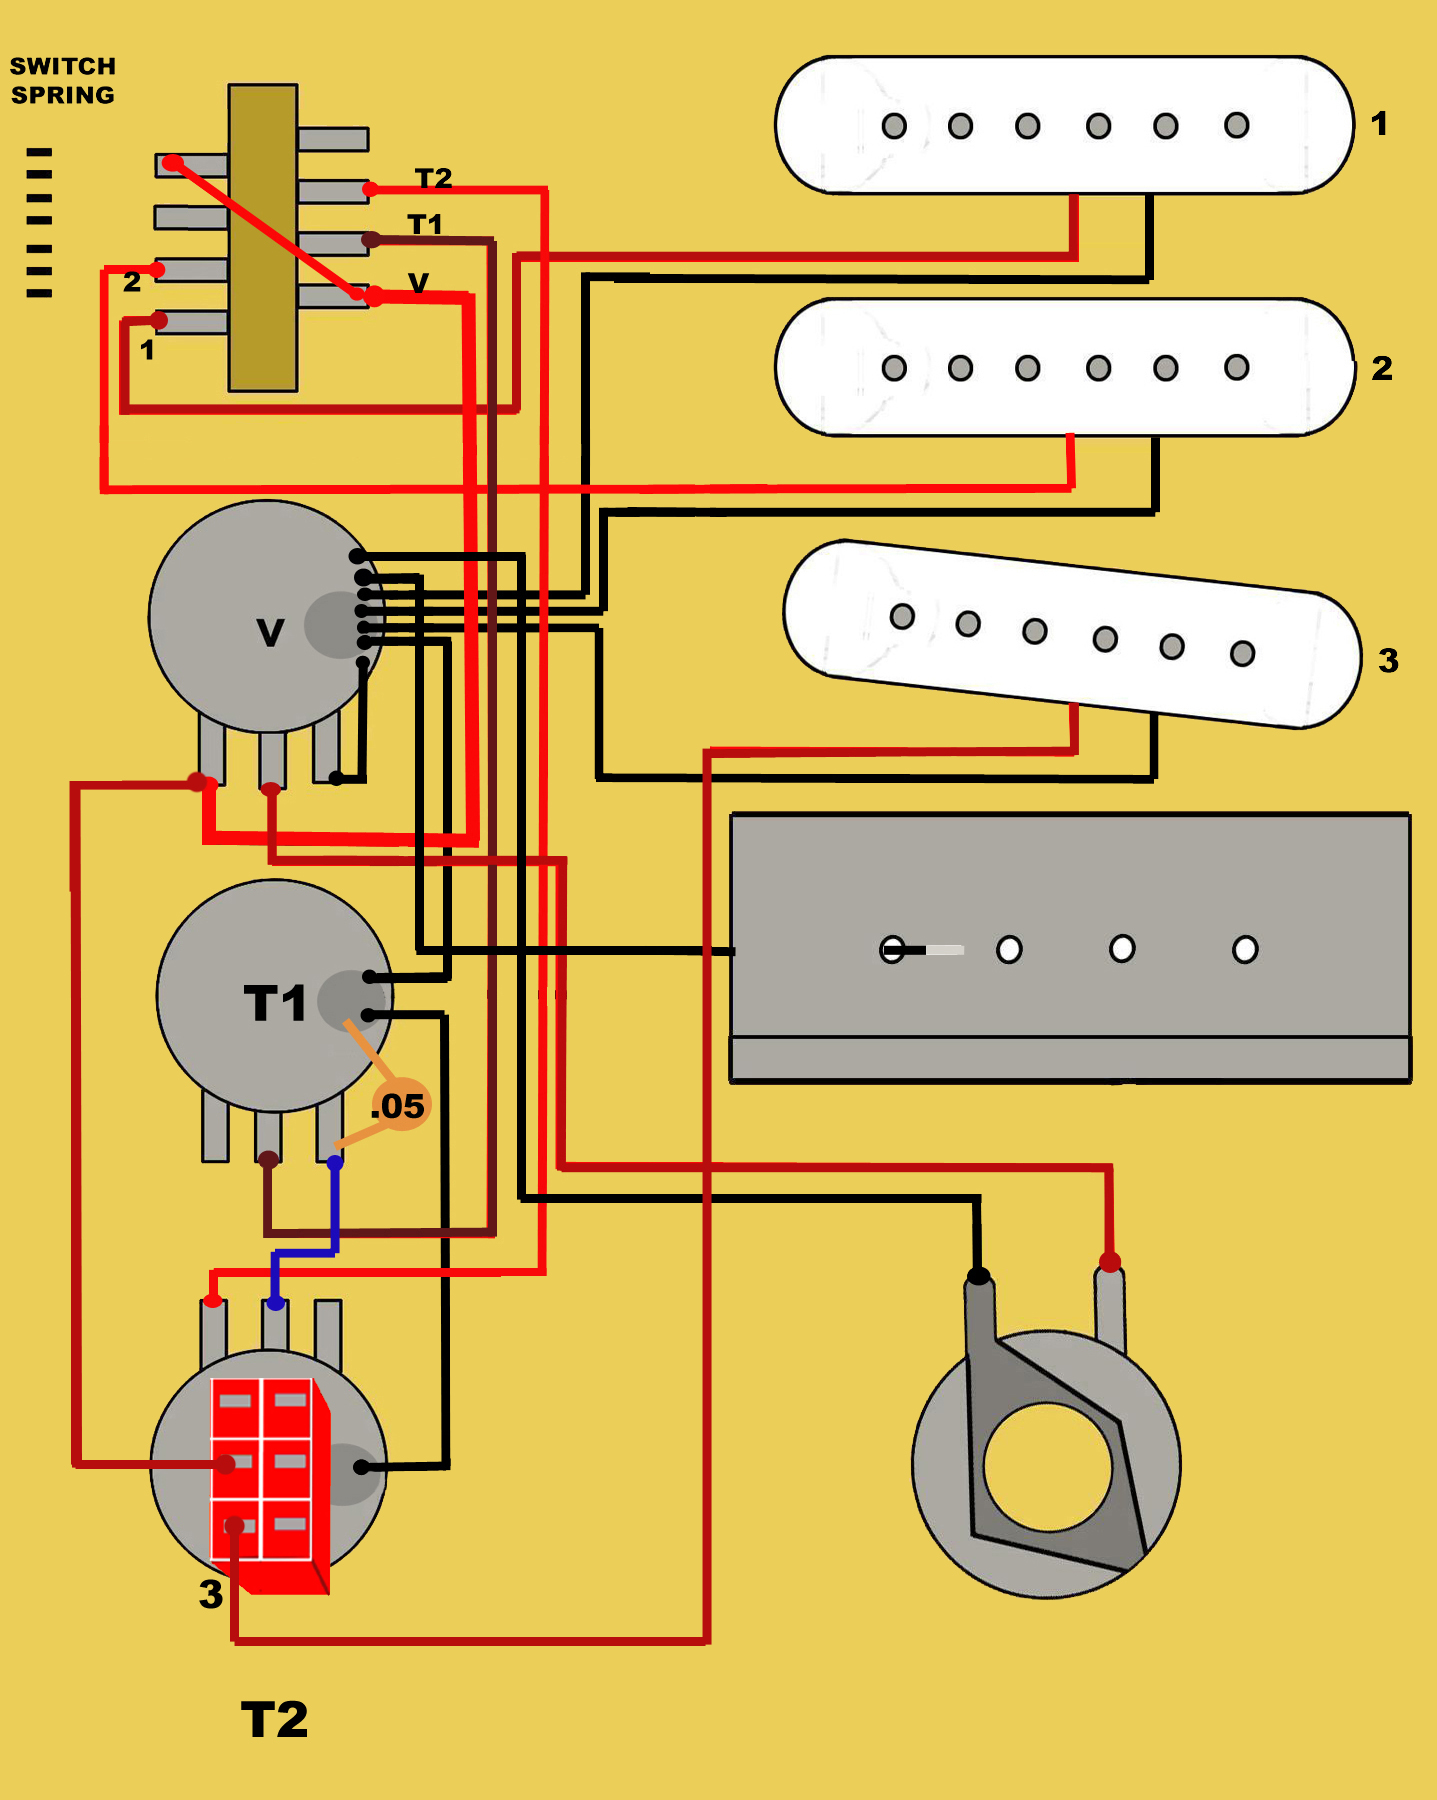 Guitar Wiring Diagram Book : Guitar electronics pickups switch wiring diagrams book